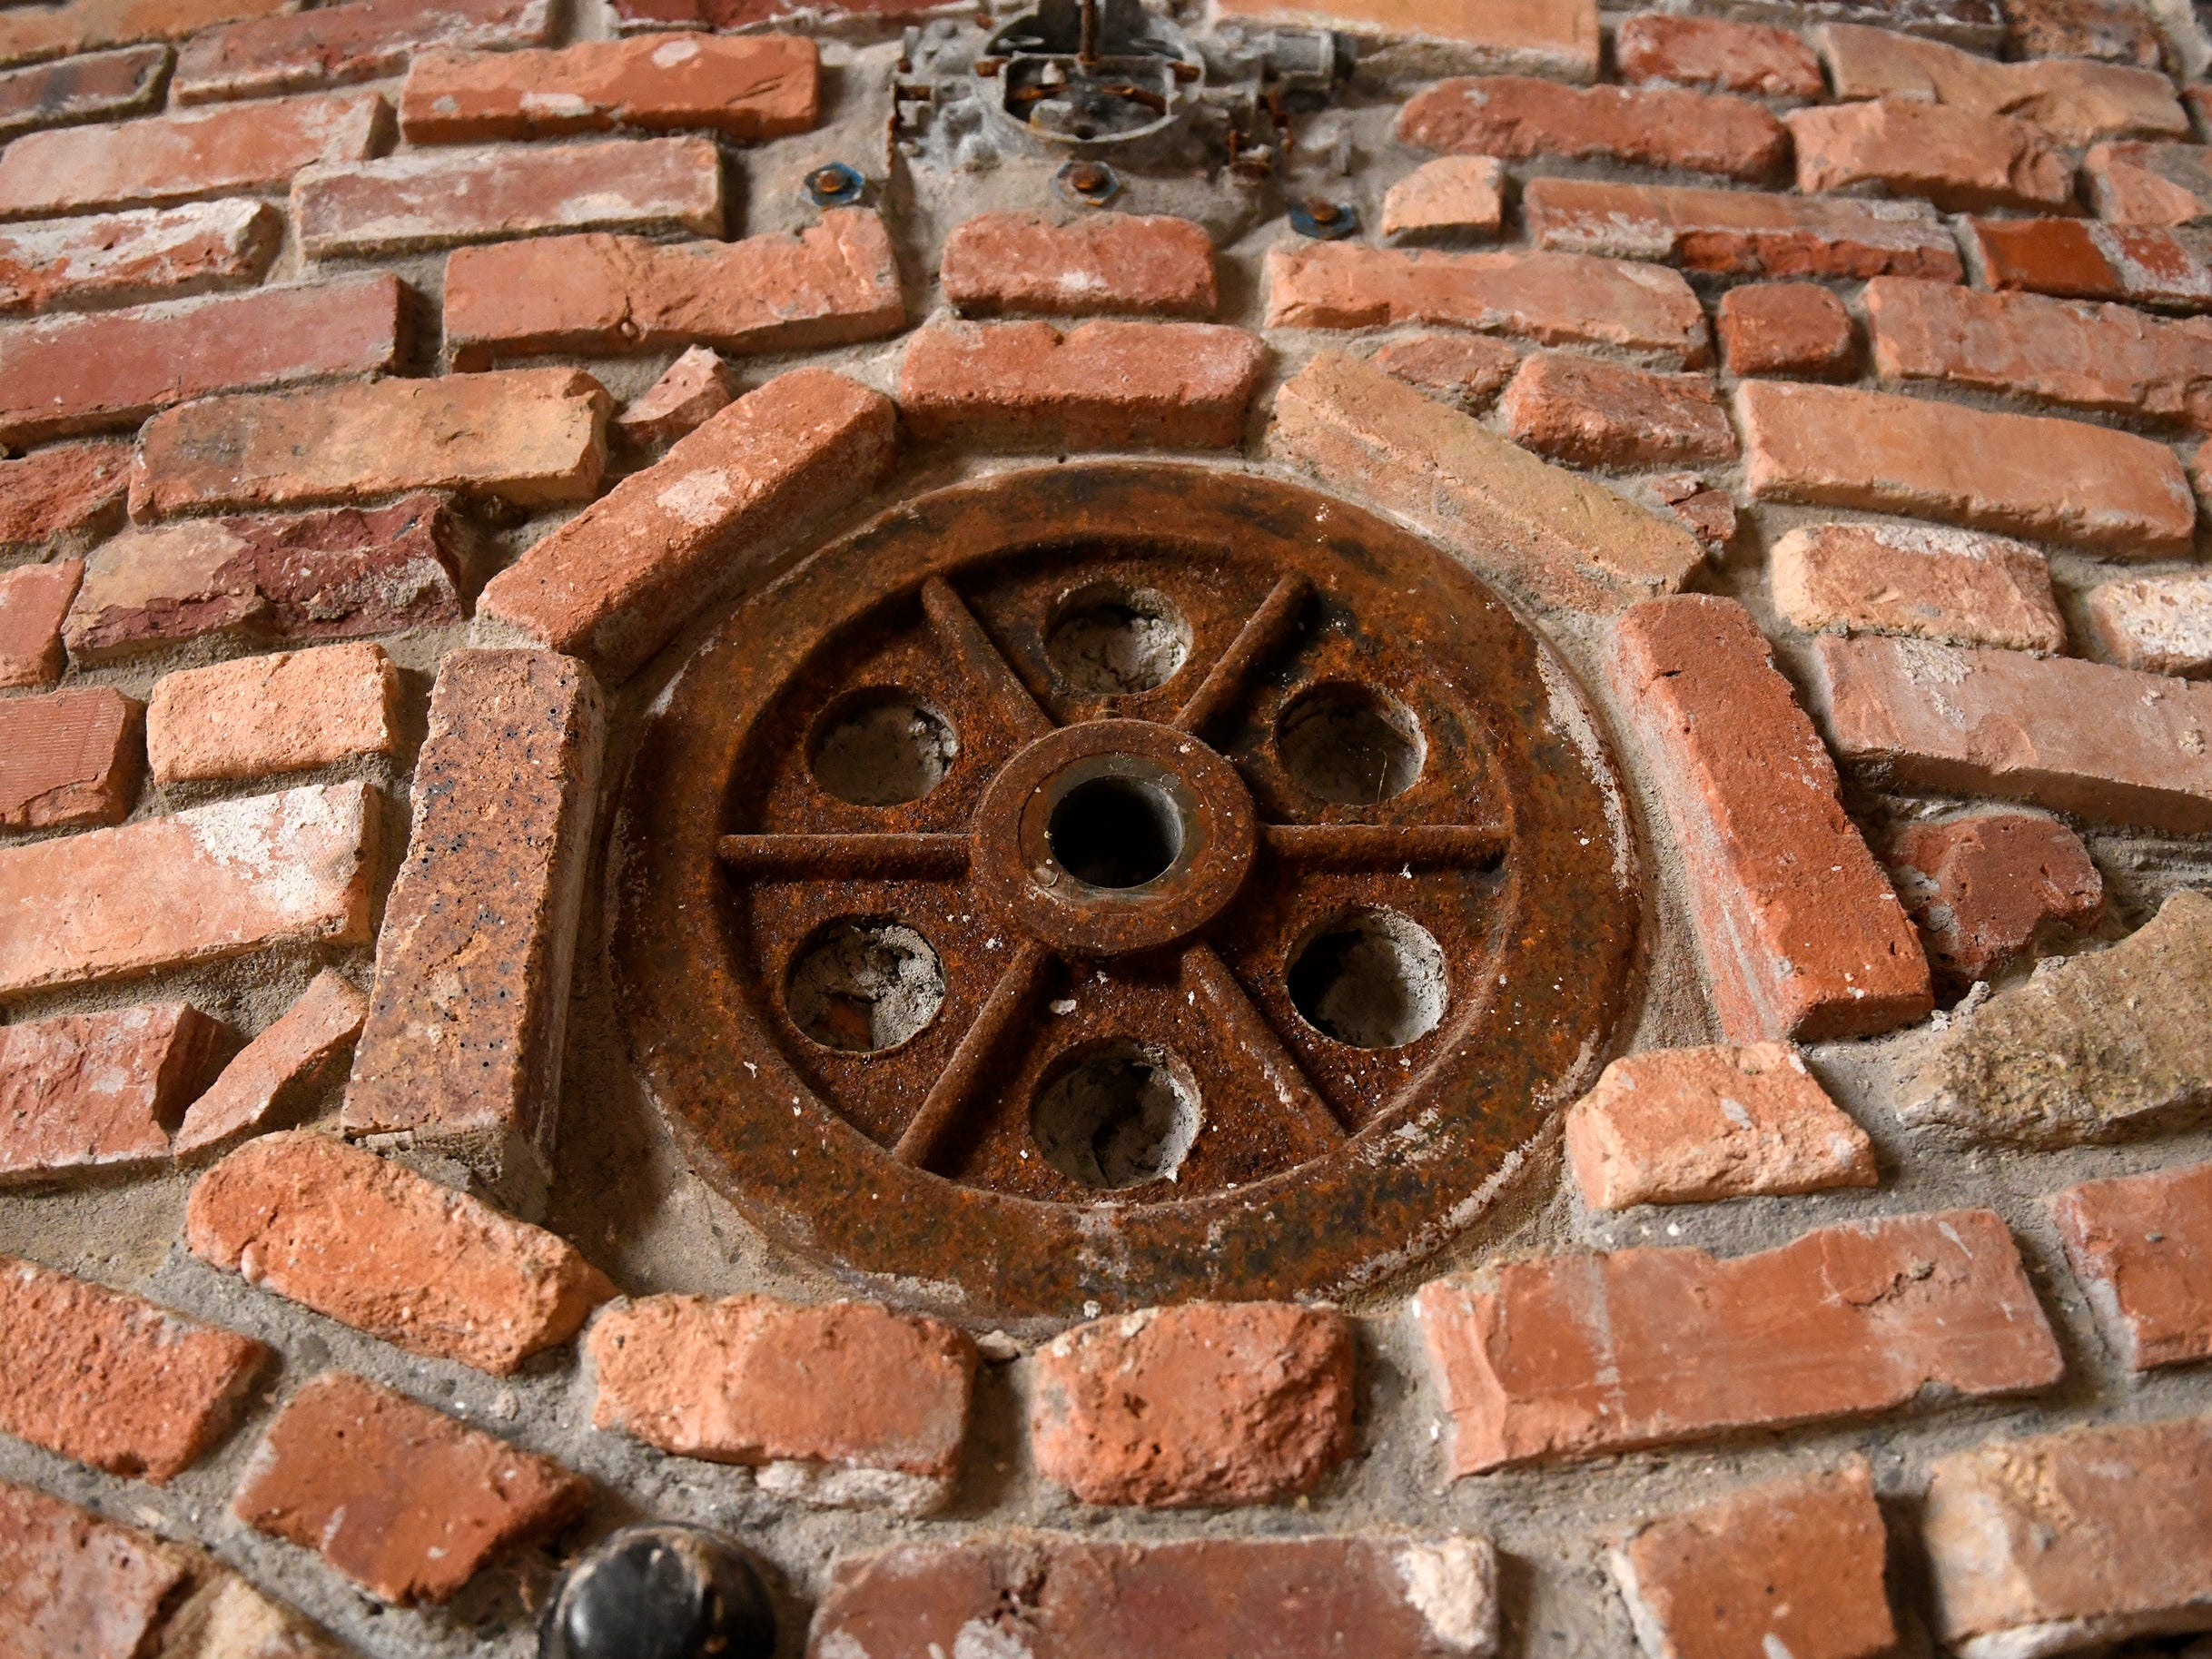 Various metal trinkets, cast concrete figures and colored glass bottles are embedded throughout the brick walls of the Palace of Depression including this metal flywheel.